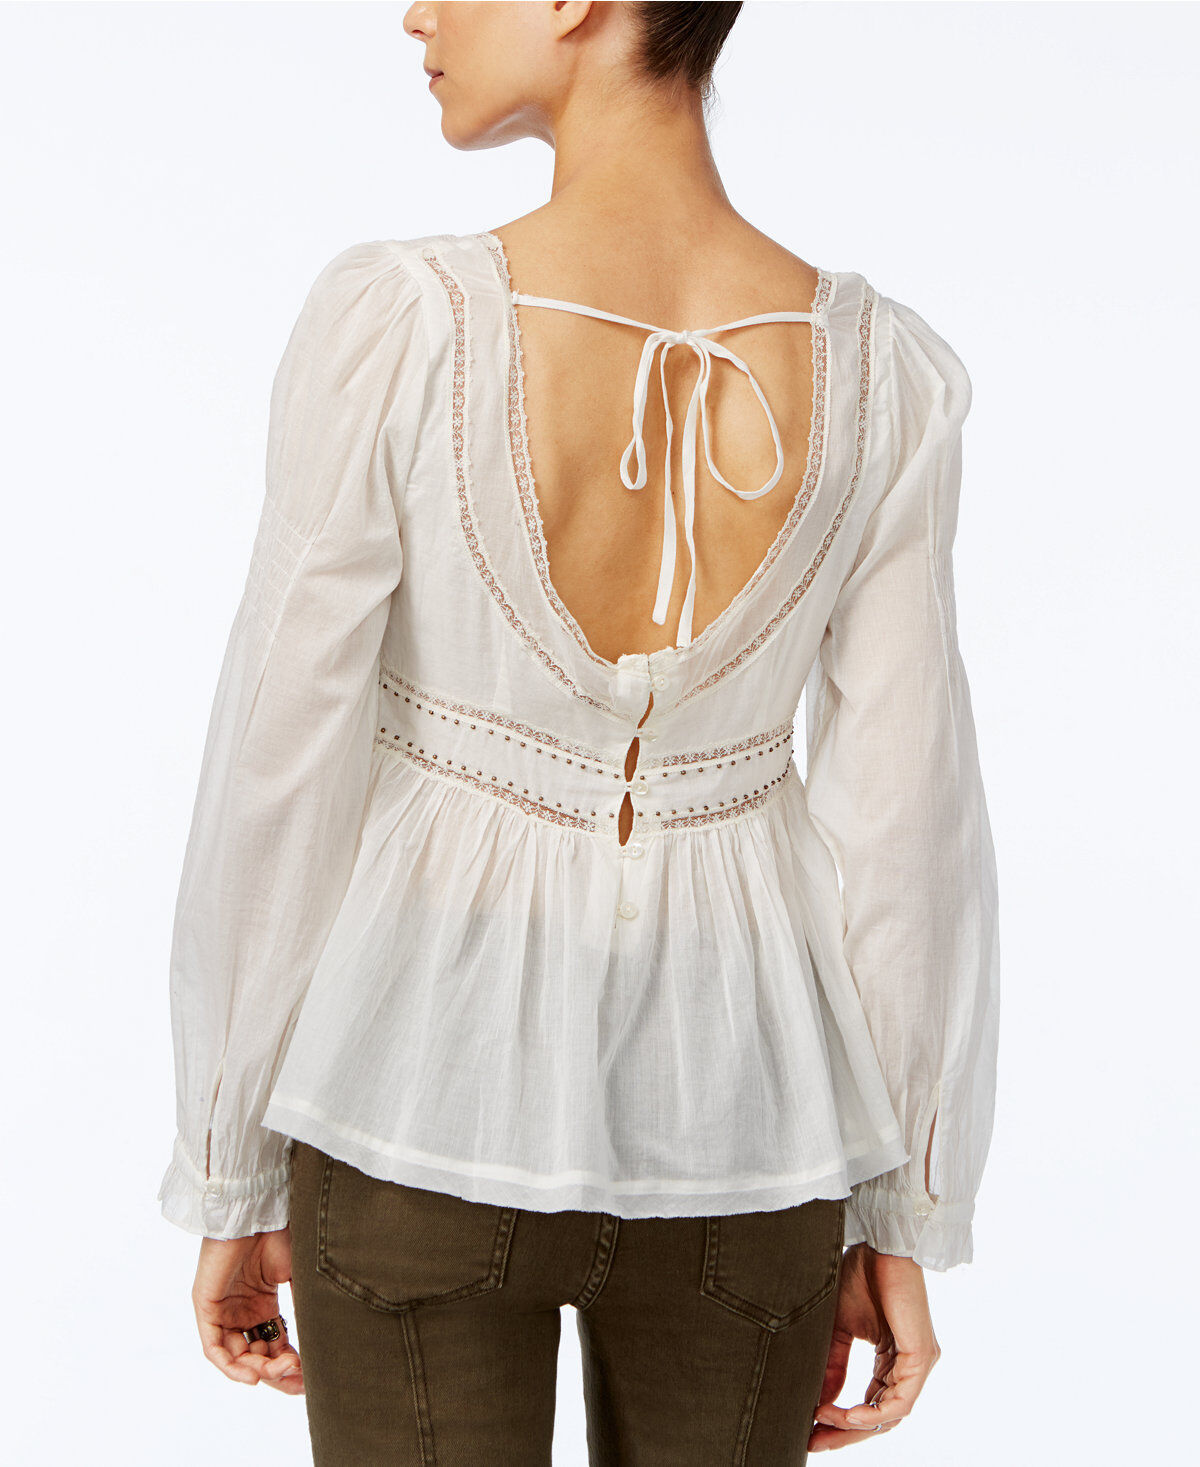 Free People damen New  Ivory Square-Neck Embellished Lace Peasant Top XS